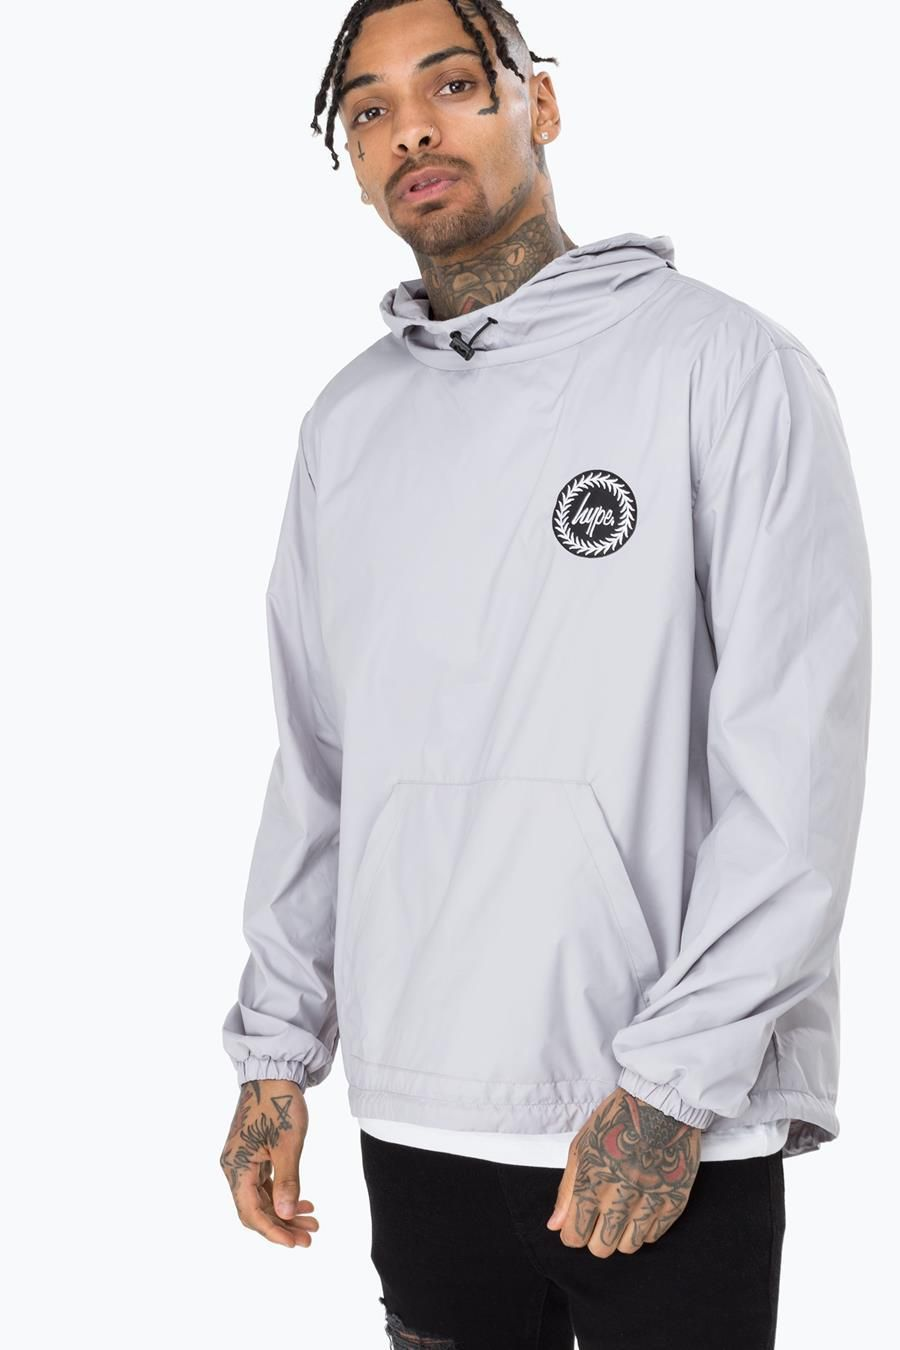 Hype Grey Crest Mens Pullover Jacket